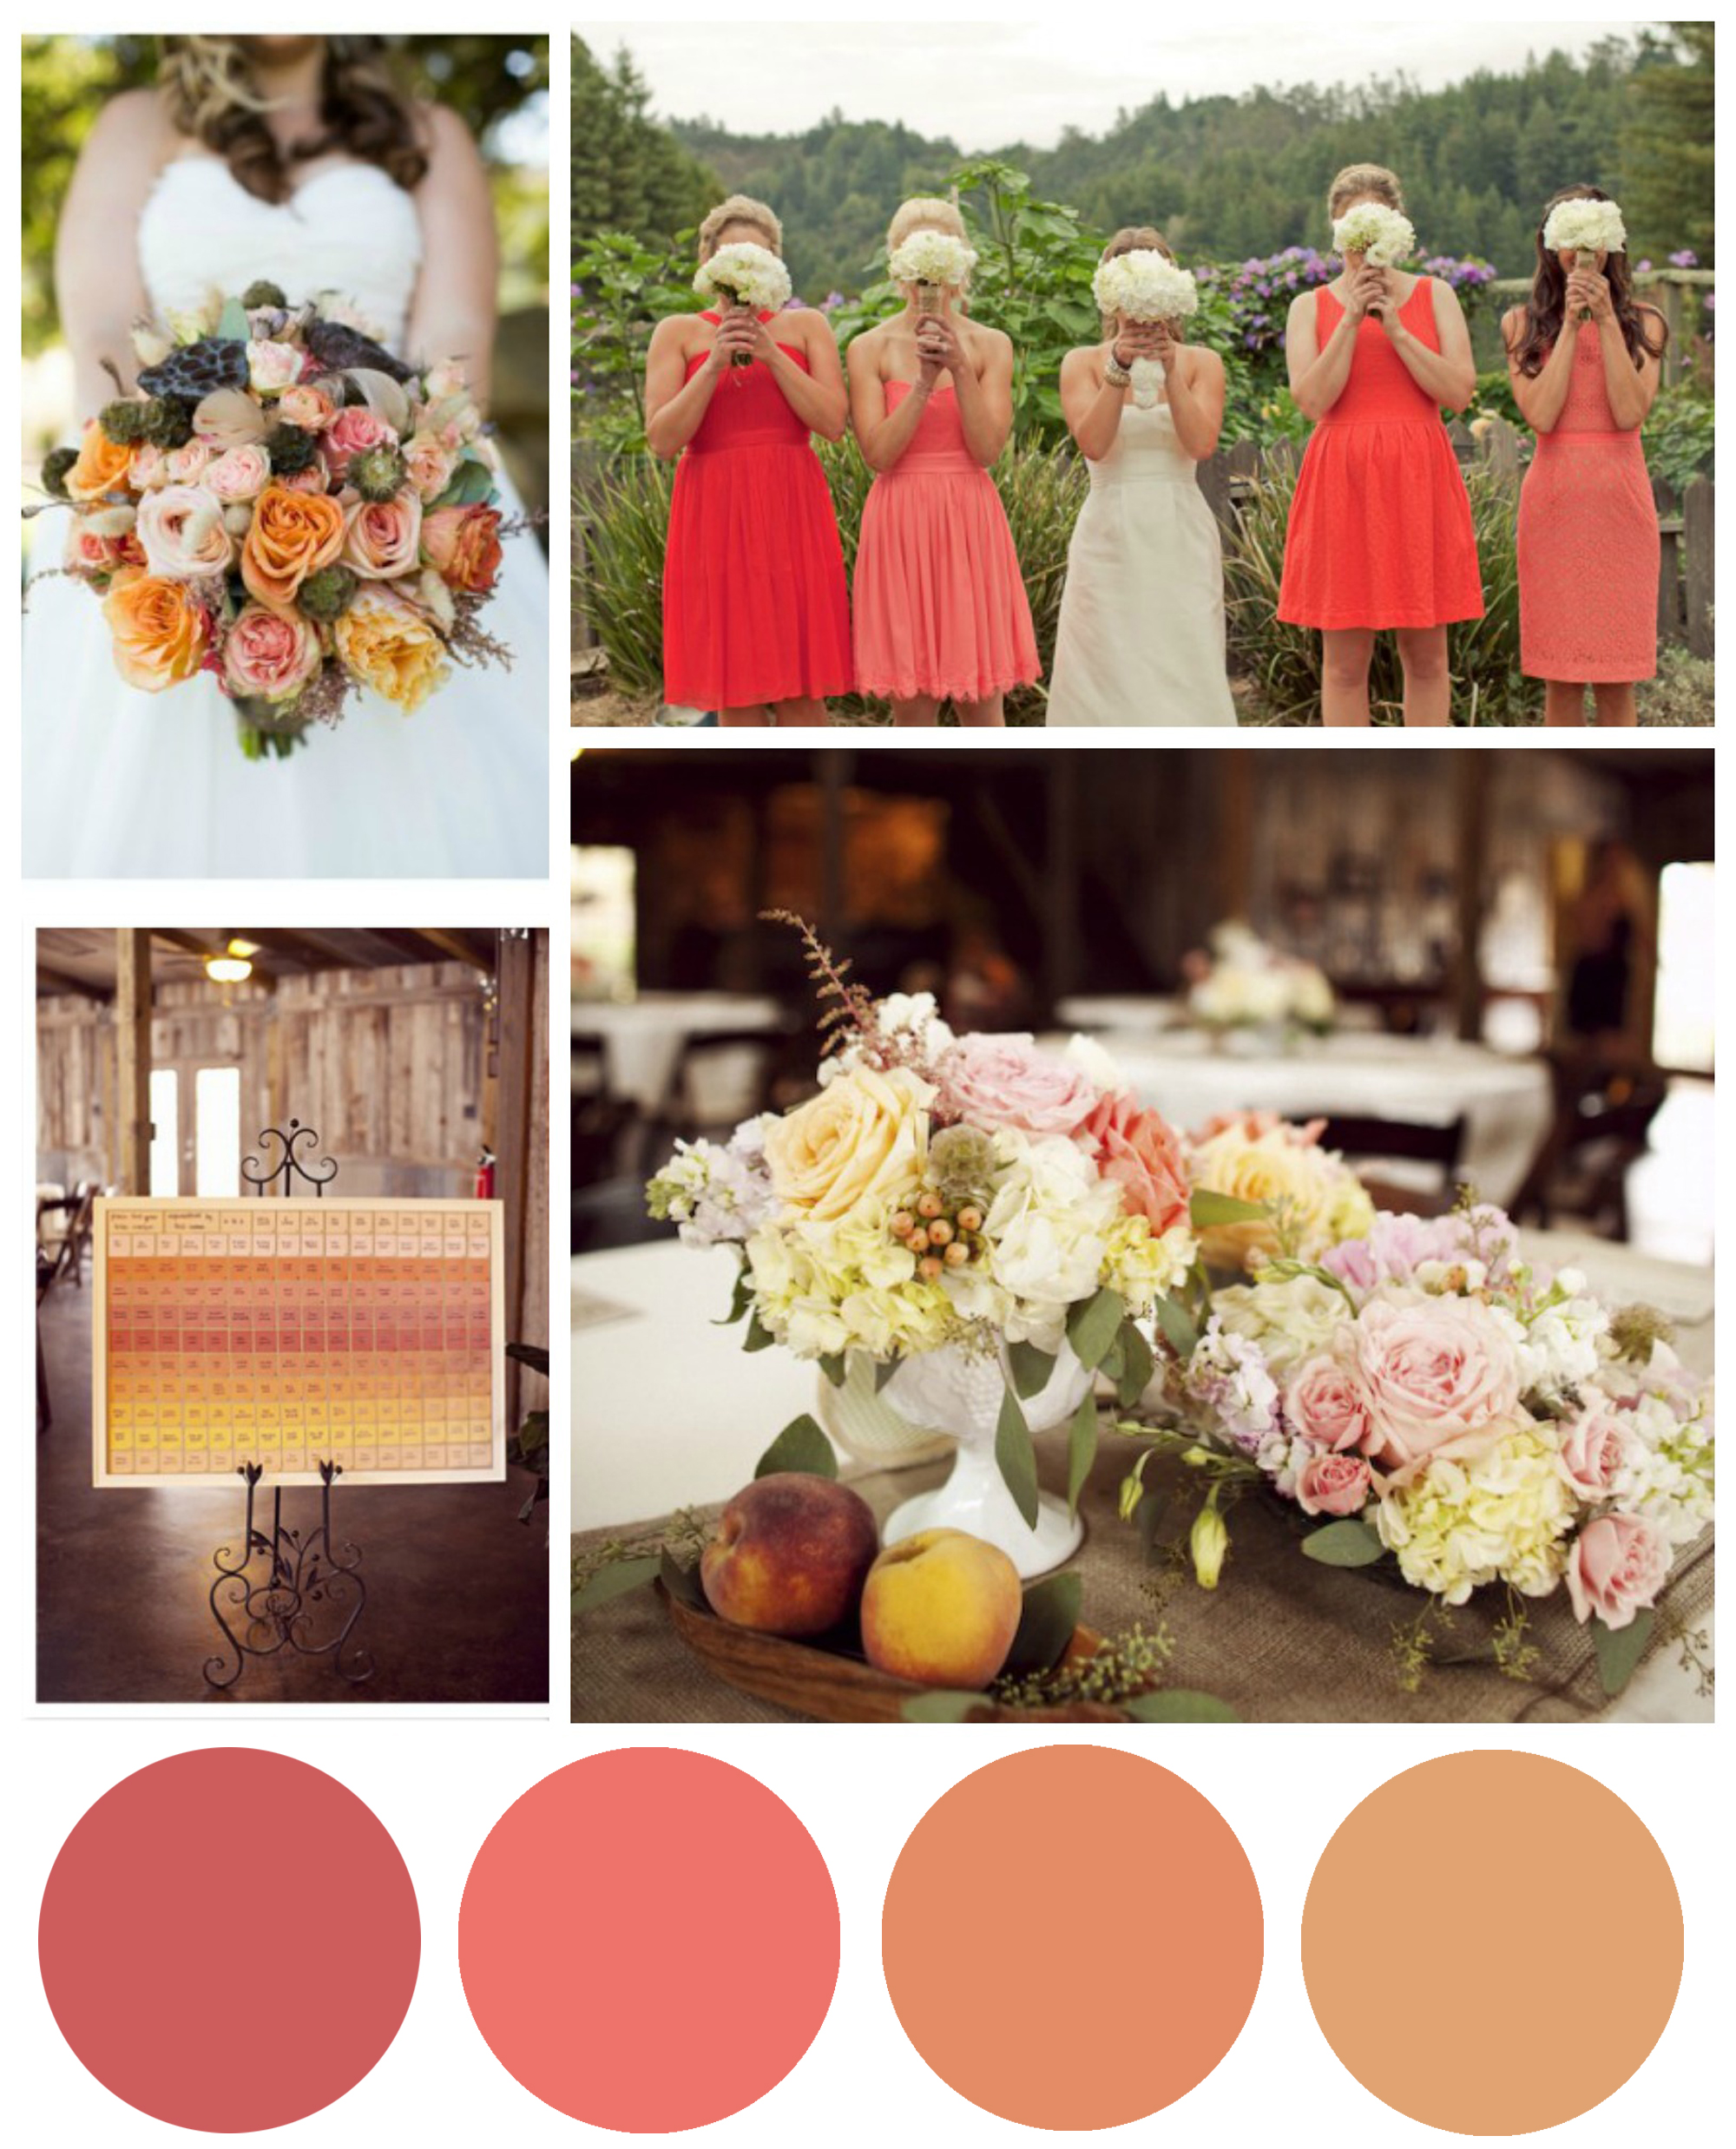 Coral & Salmon Wedding Color Inspiration